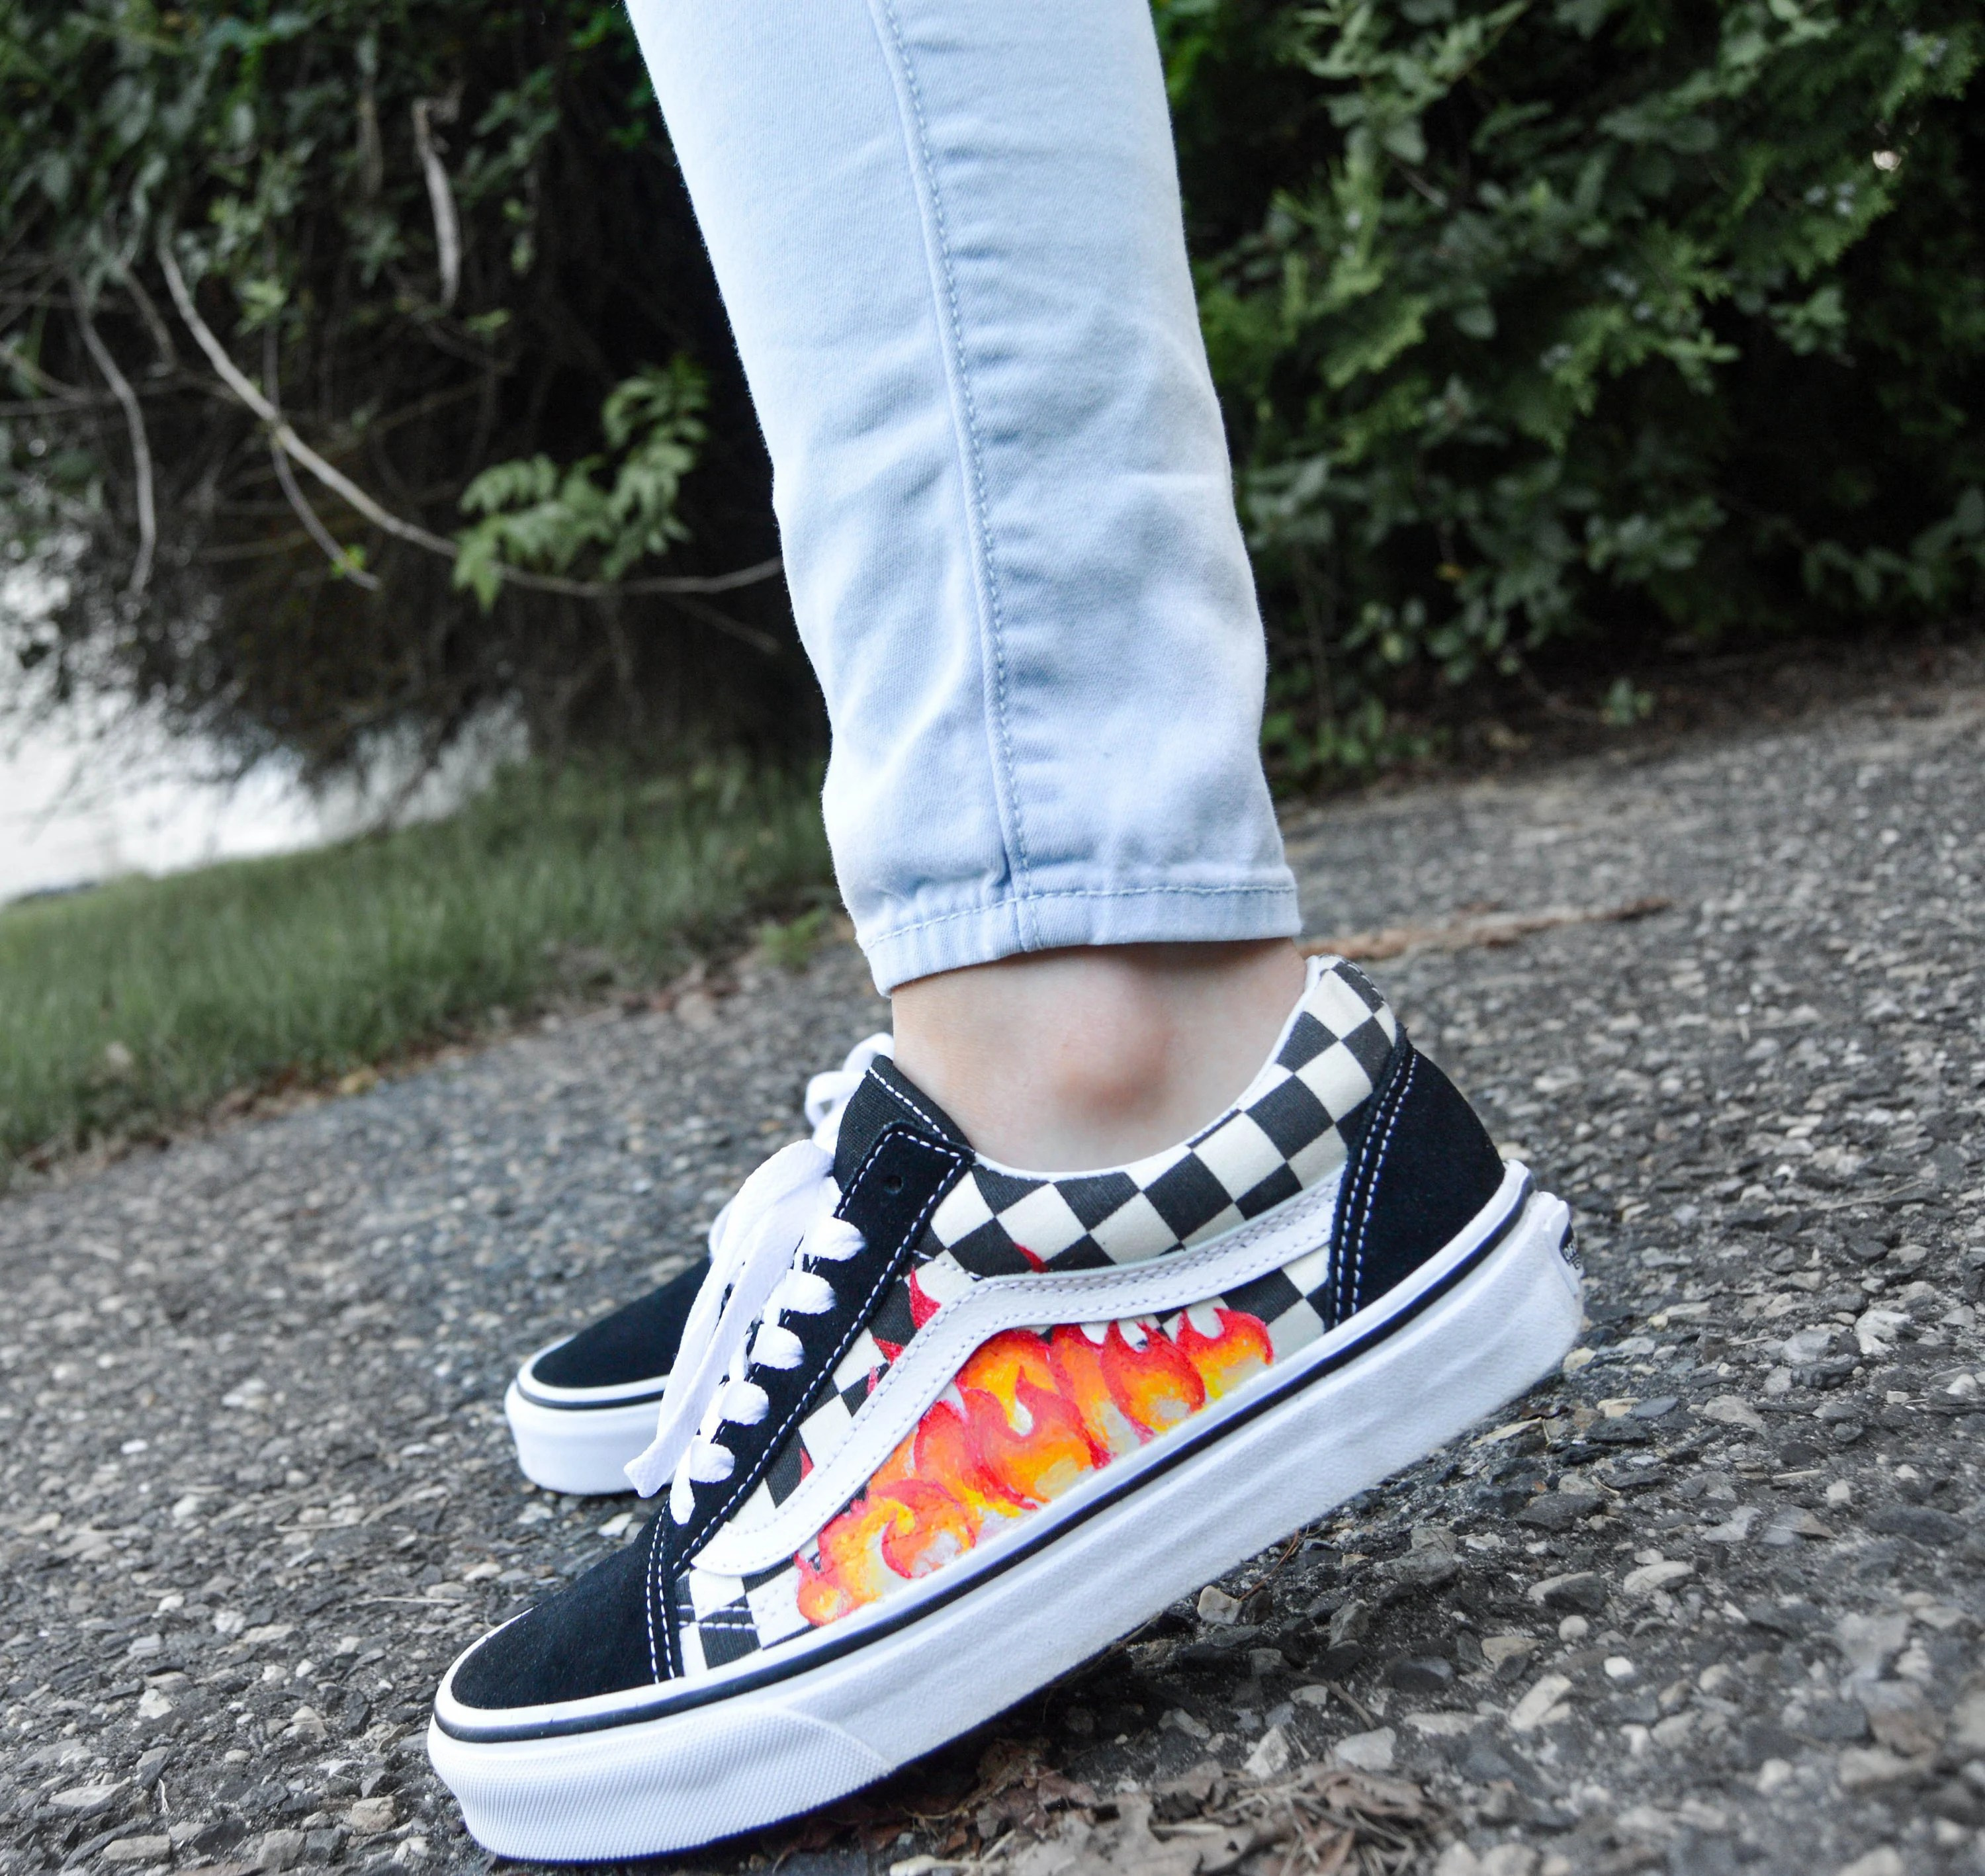 checkerboard vans with flames